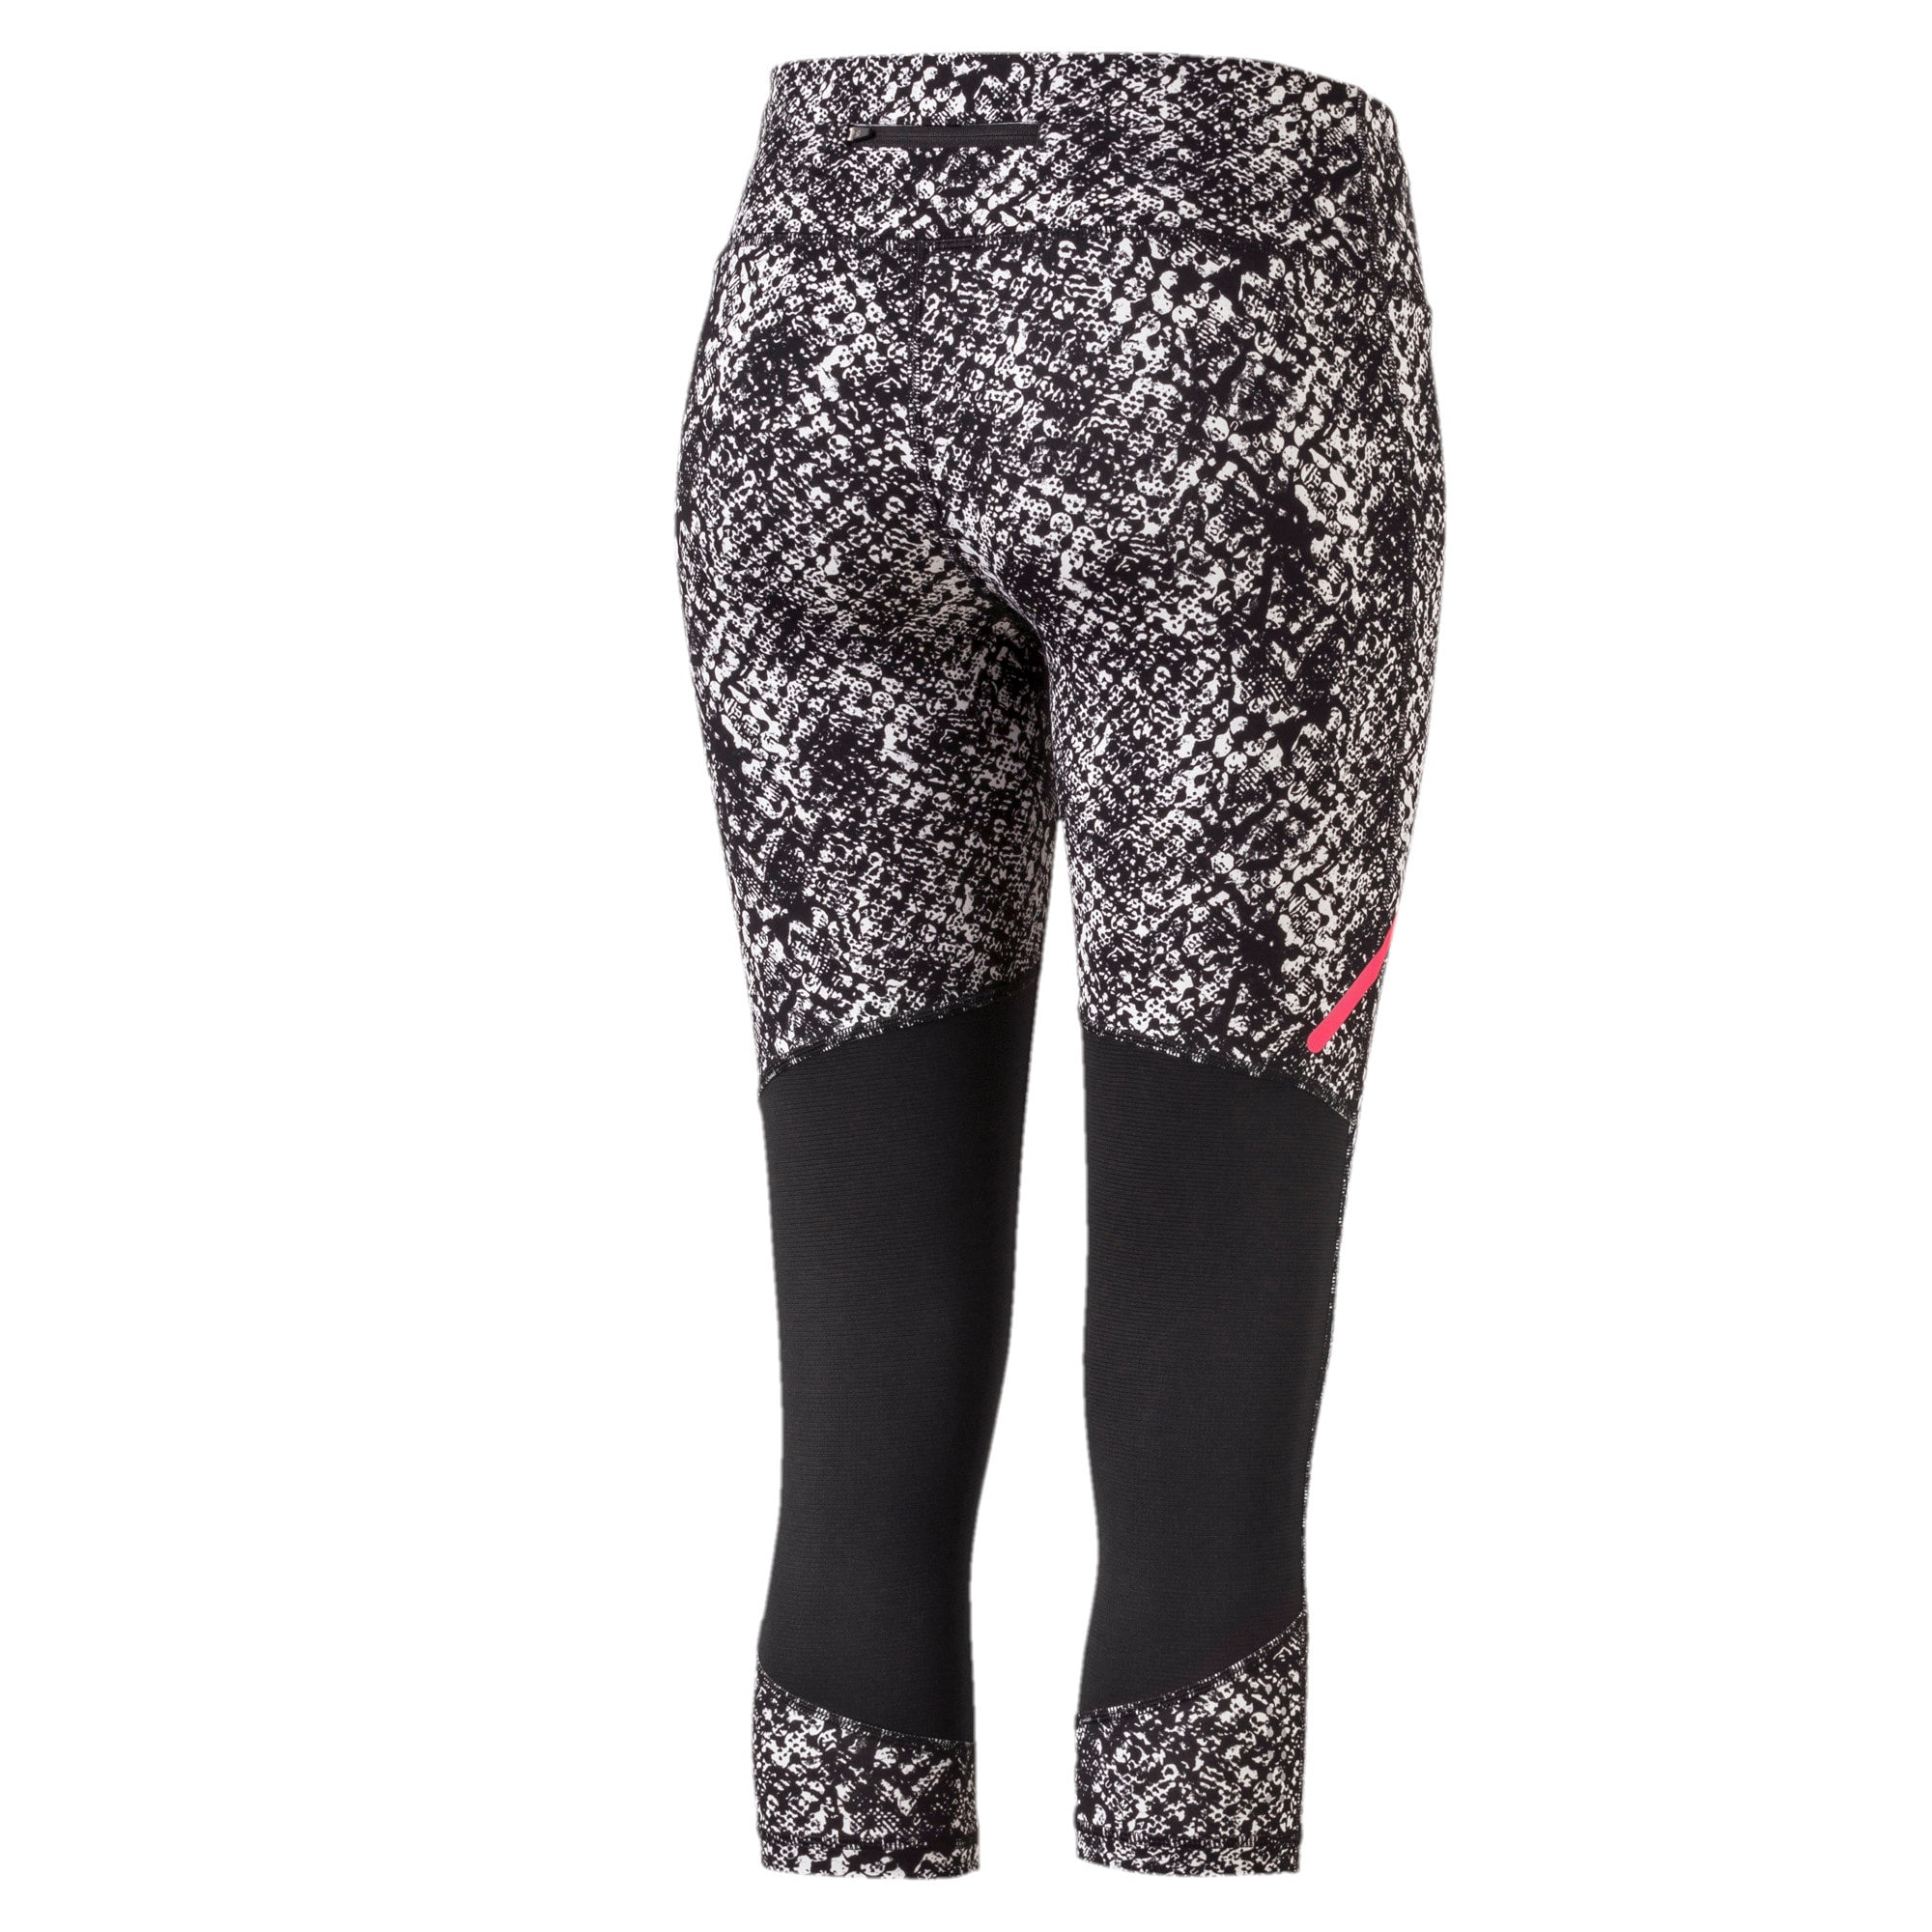 Graphic 3/4 Women's Tights, Black-White Euphoria, large-IND